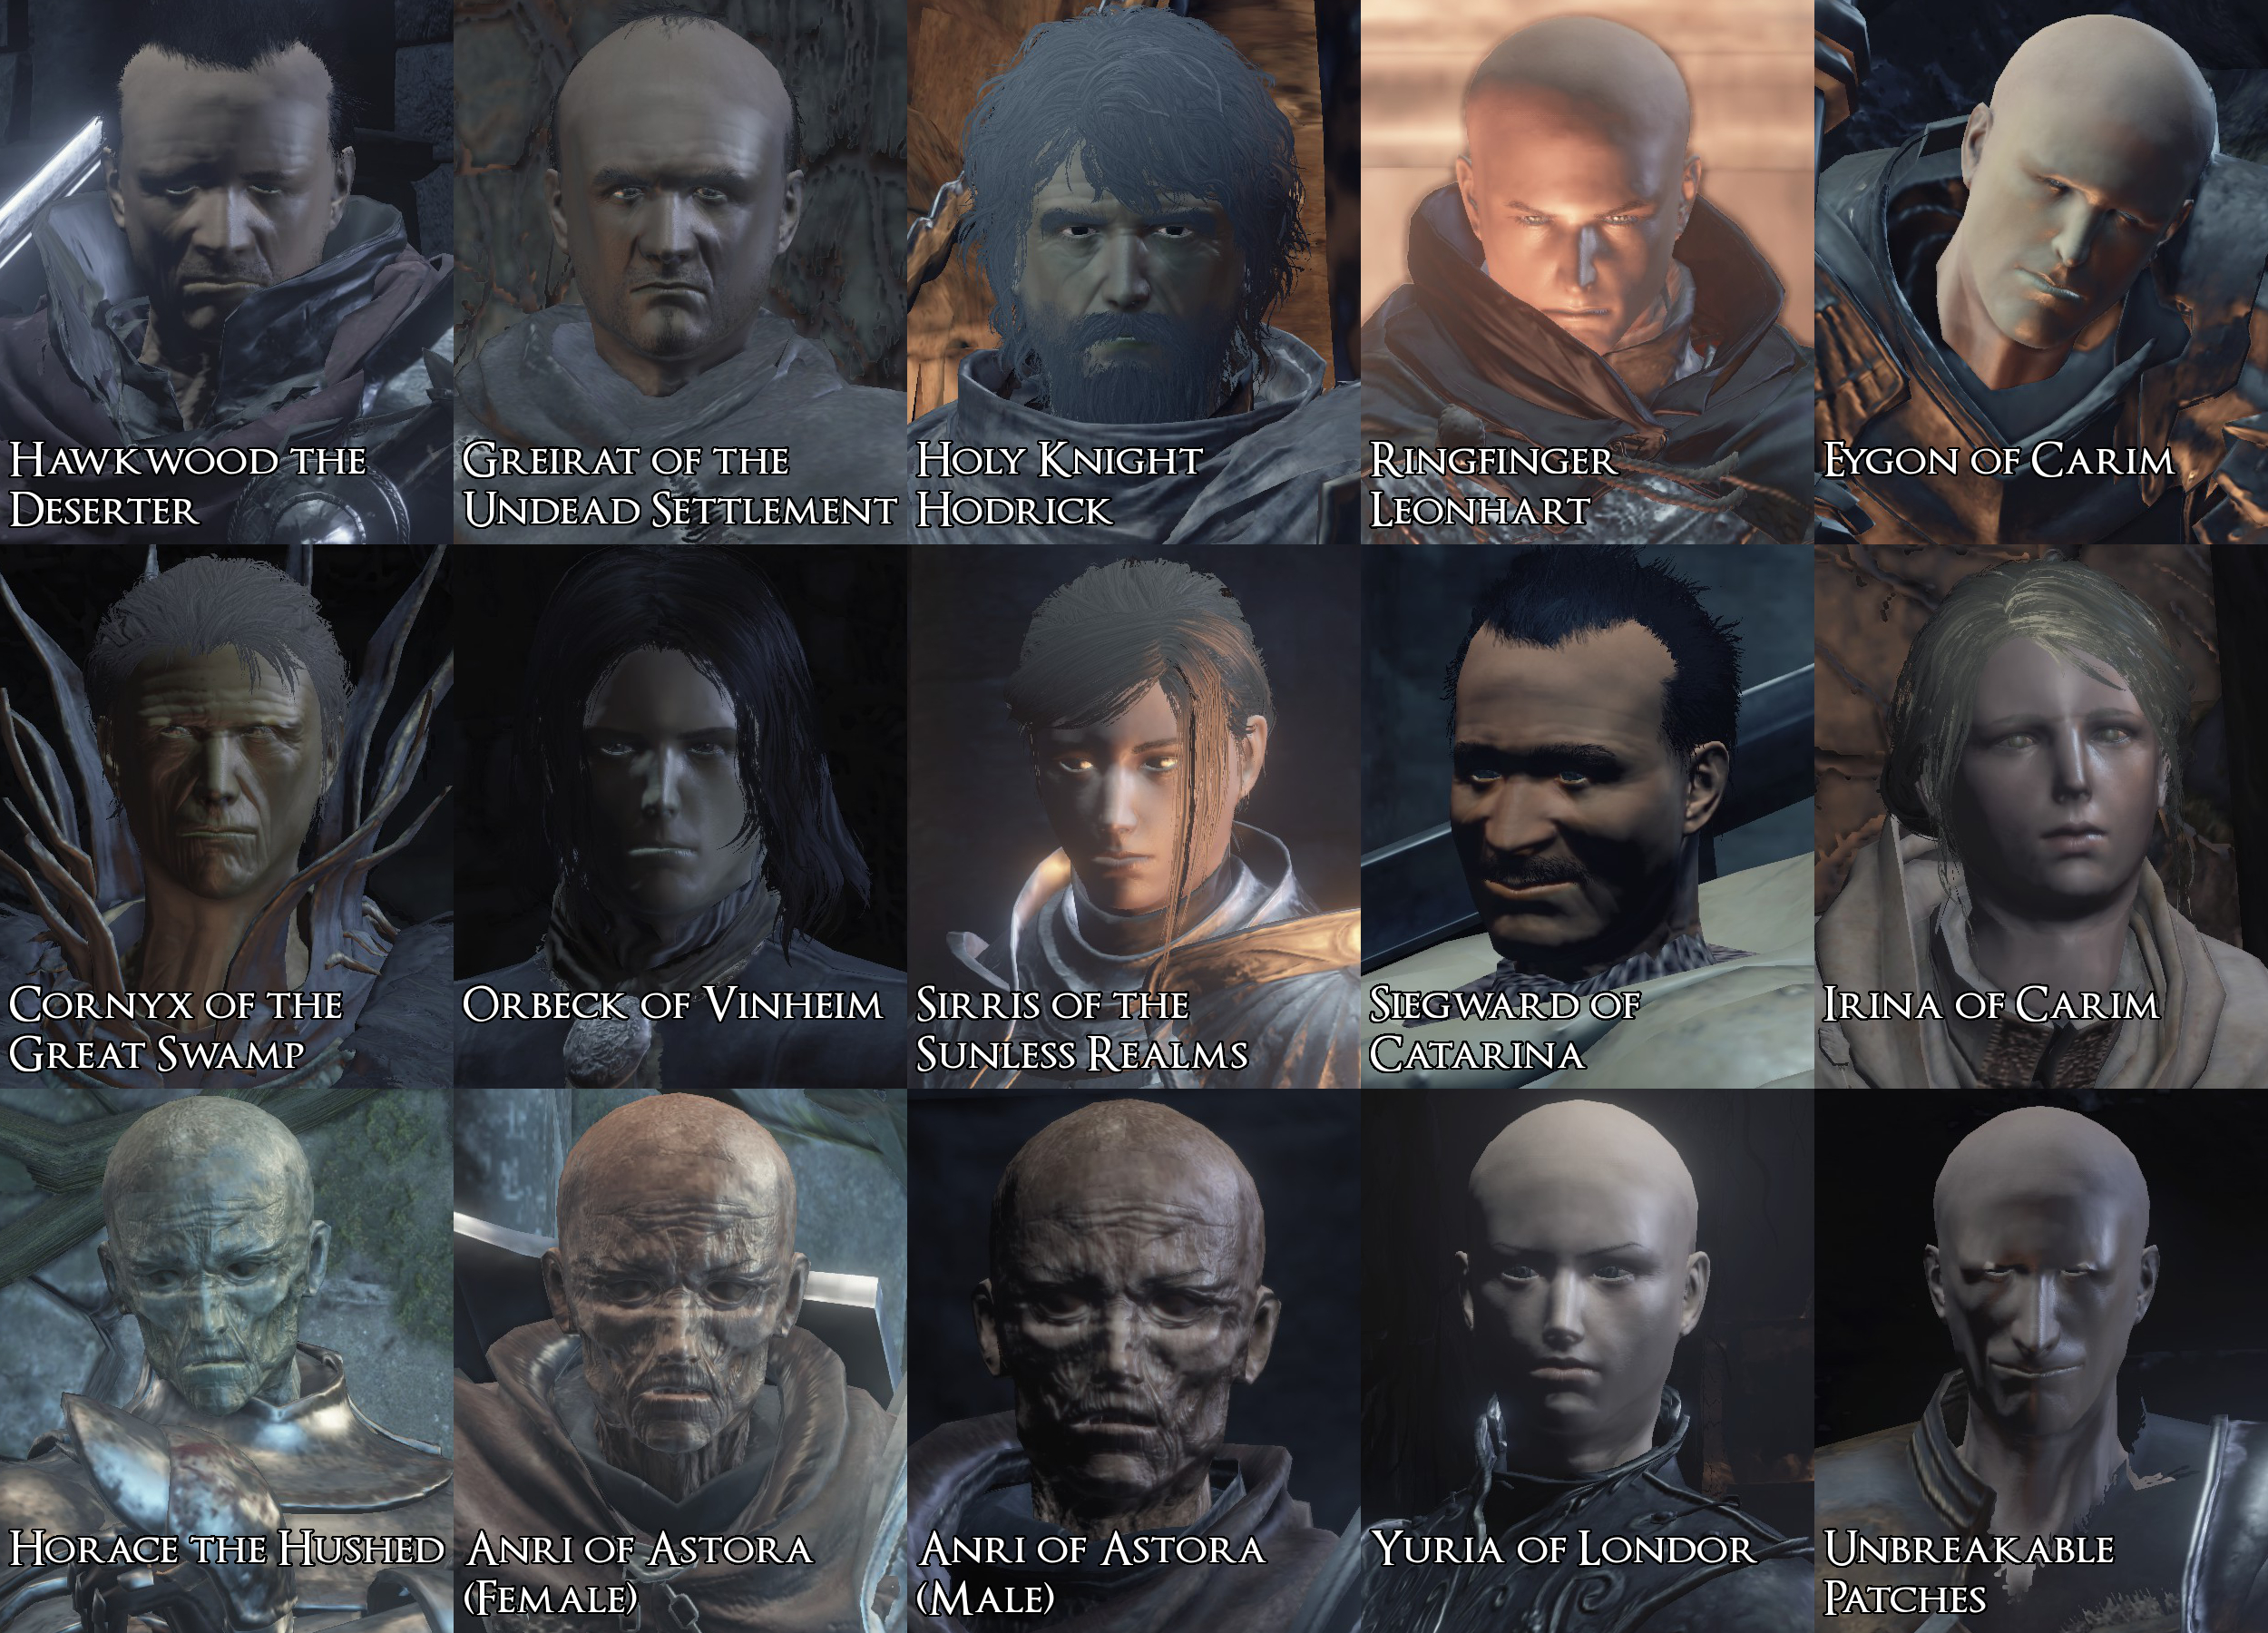 fa6 dark souls 3 characters without helmets dark souls know your meme,Dark Souls 3 Memes